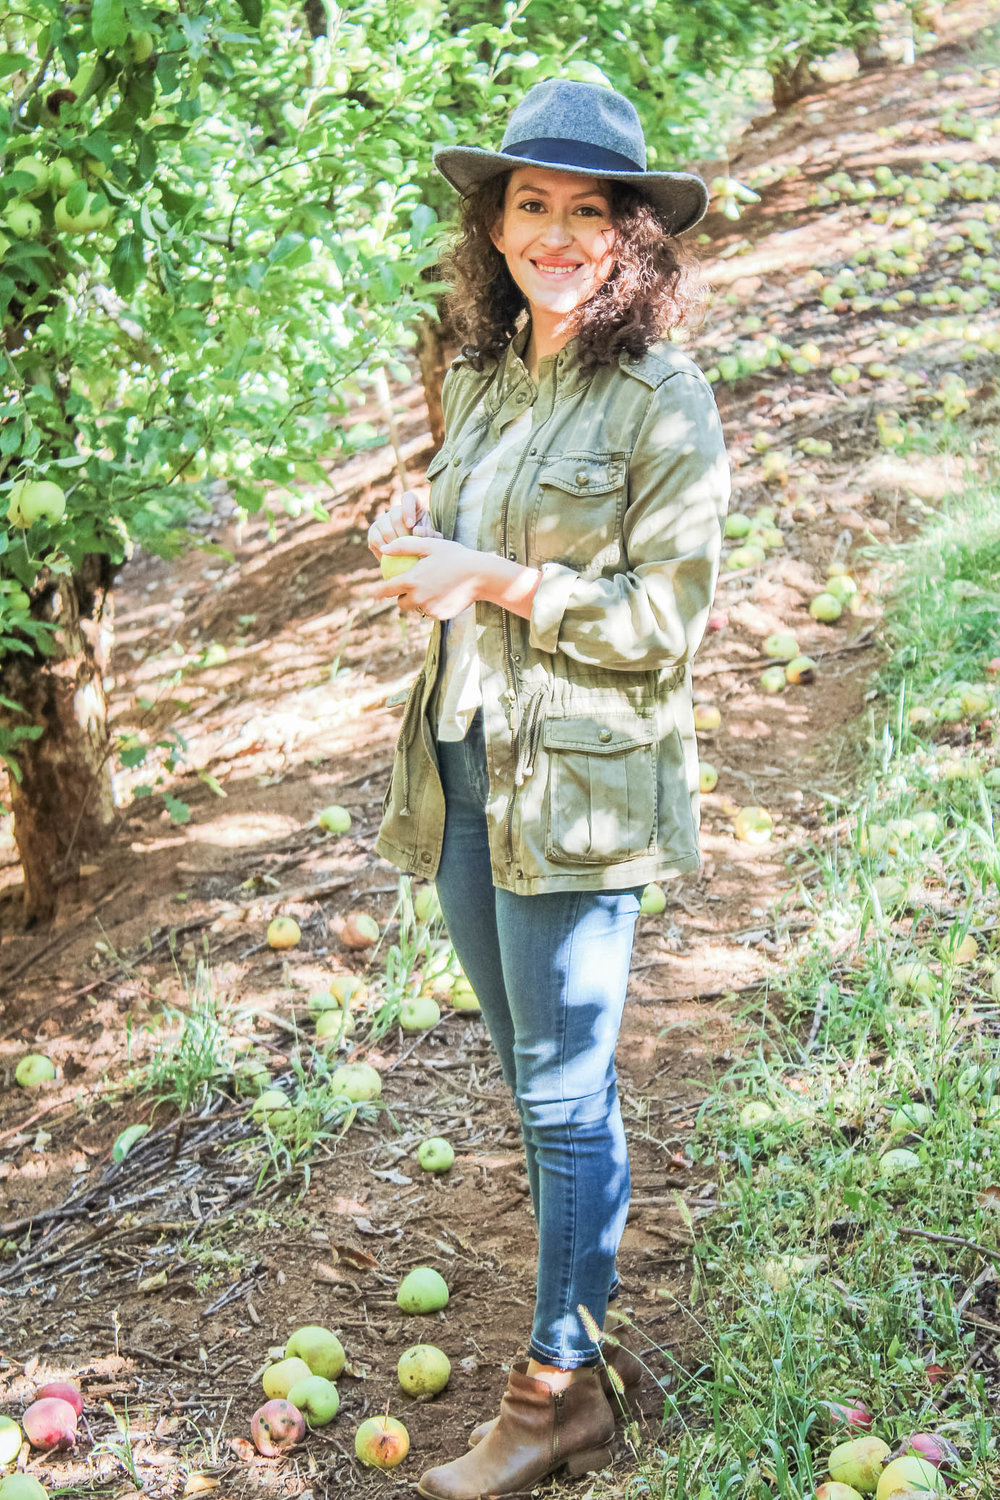 Apple picking outfit from my fall capsule wardrobe